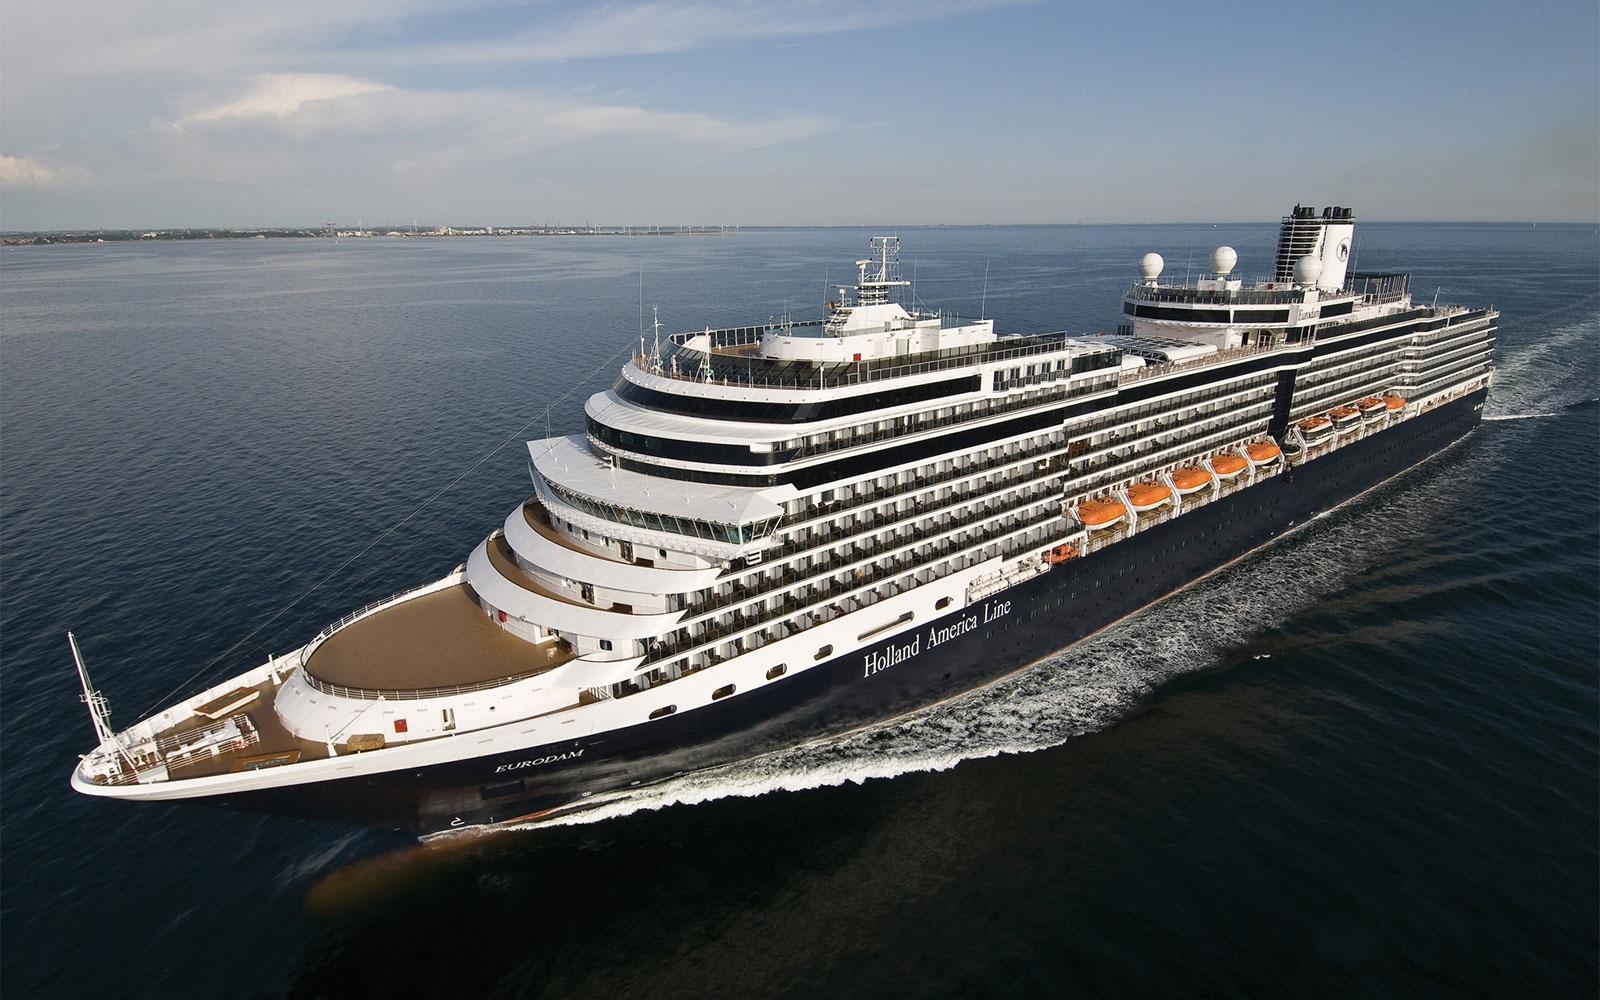 No 7. Large-Ship Ocean Cruise Line: Holland America Line